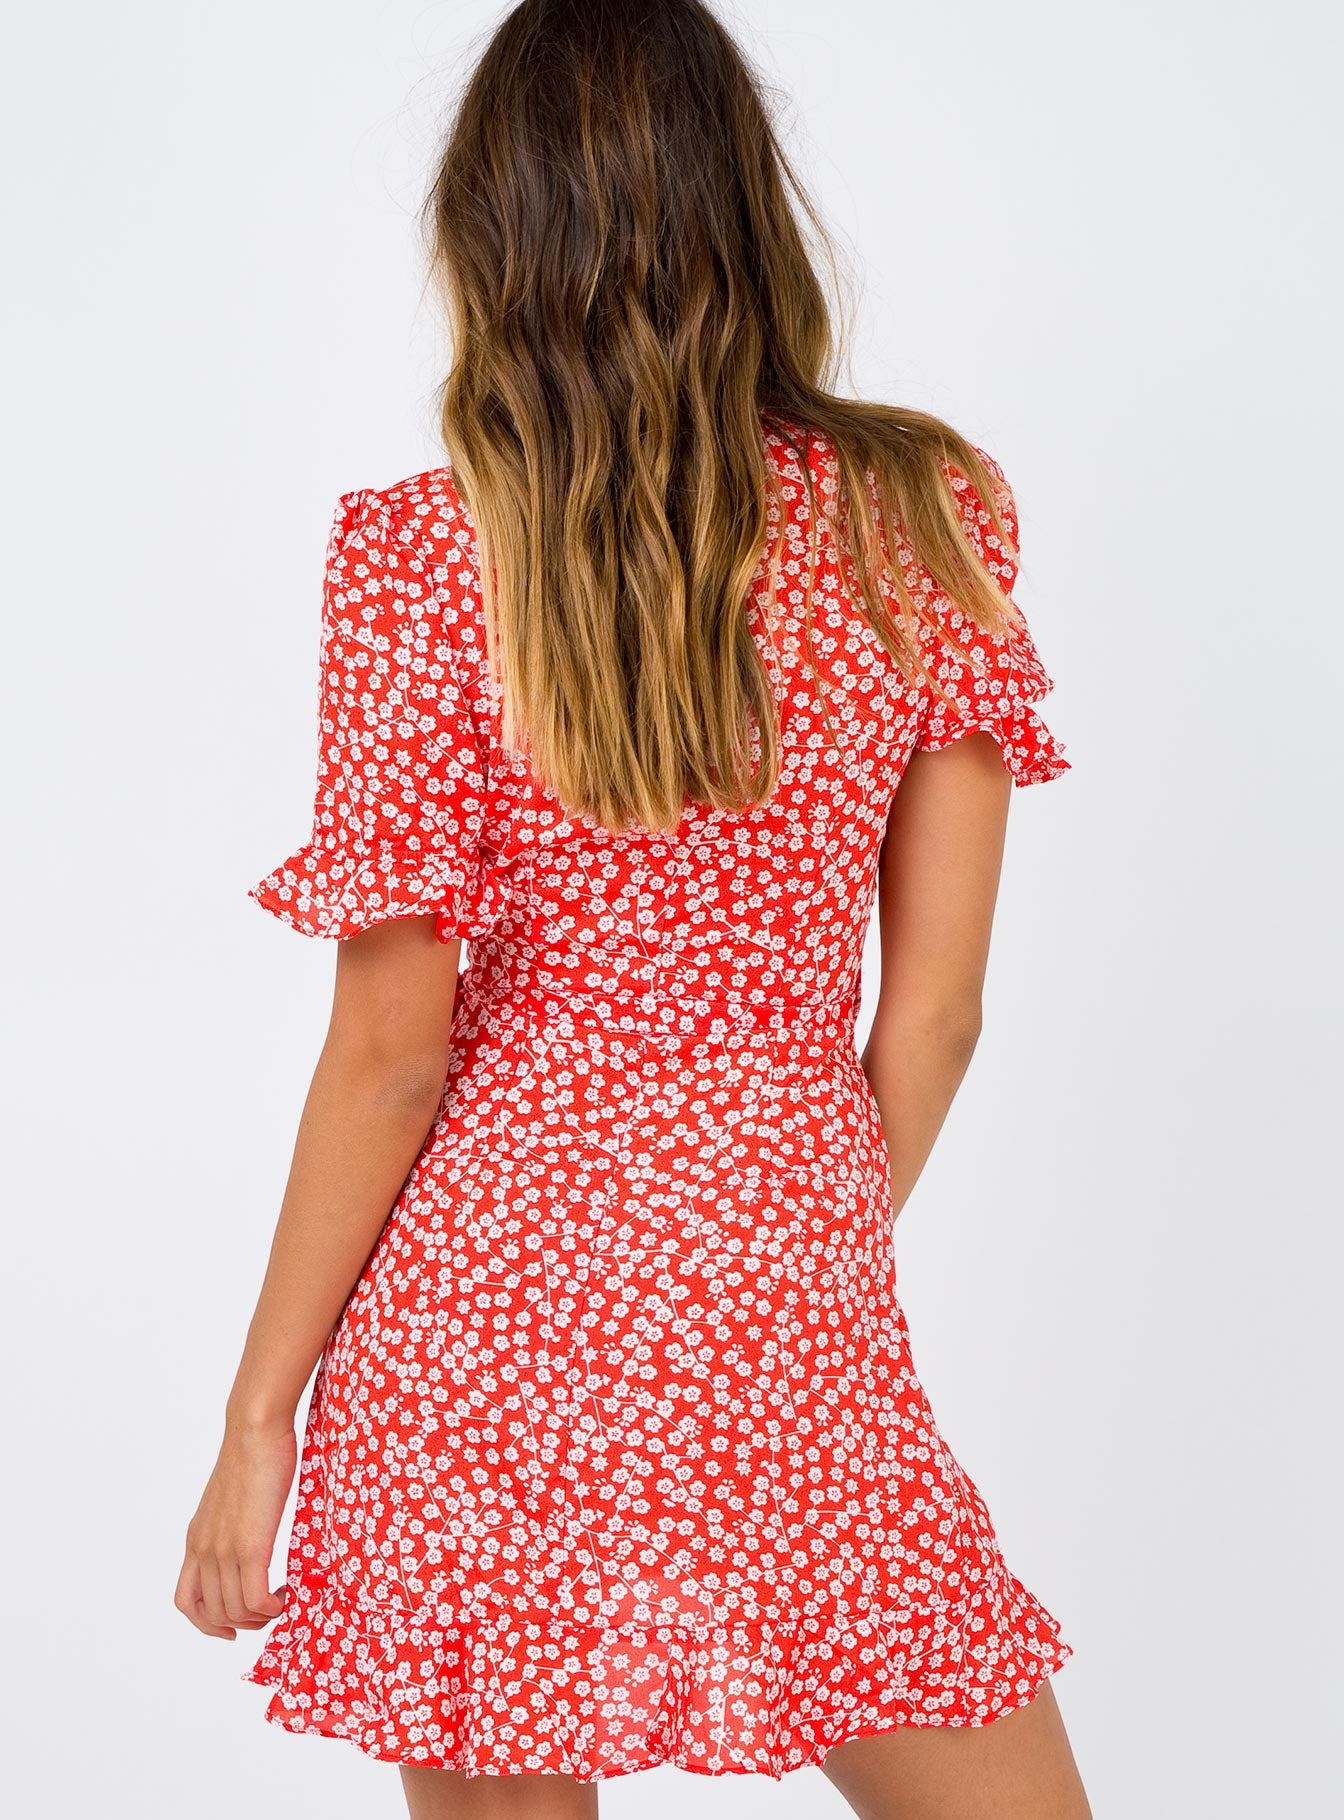 The Poppy Moore Mini Dress Red